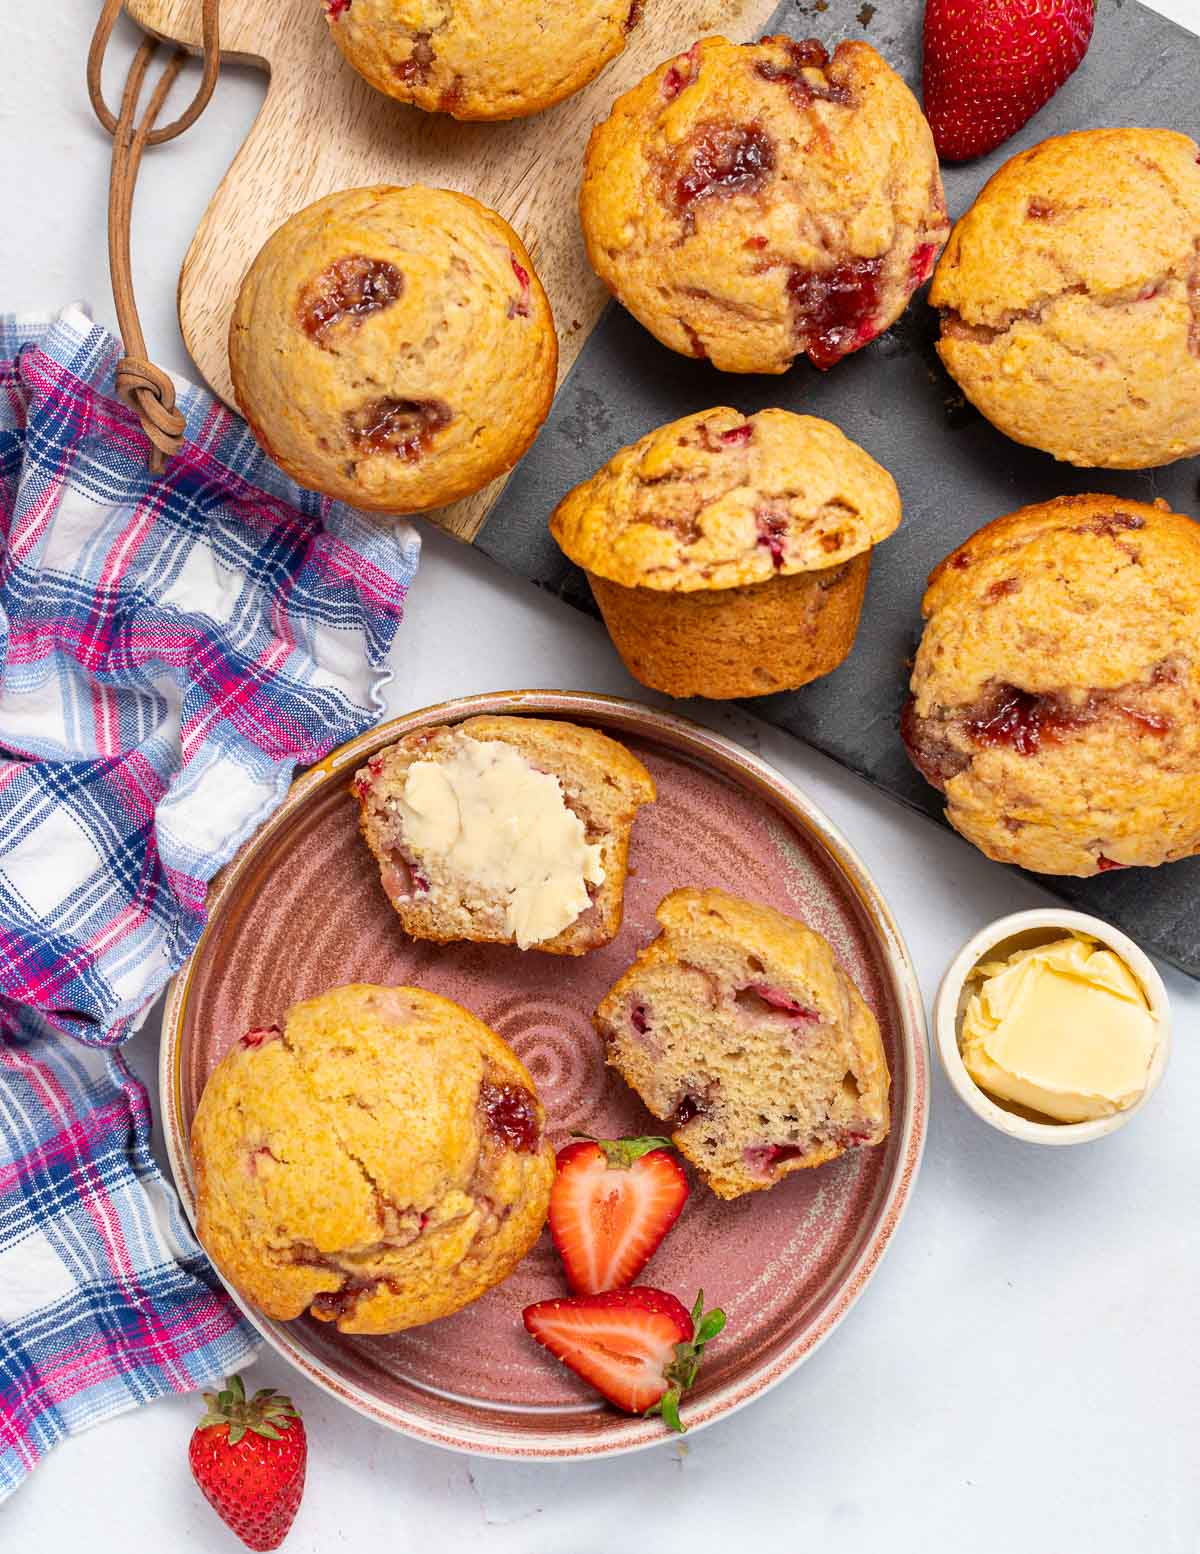 strawberry muffins on a board and plate